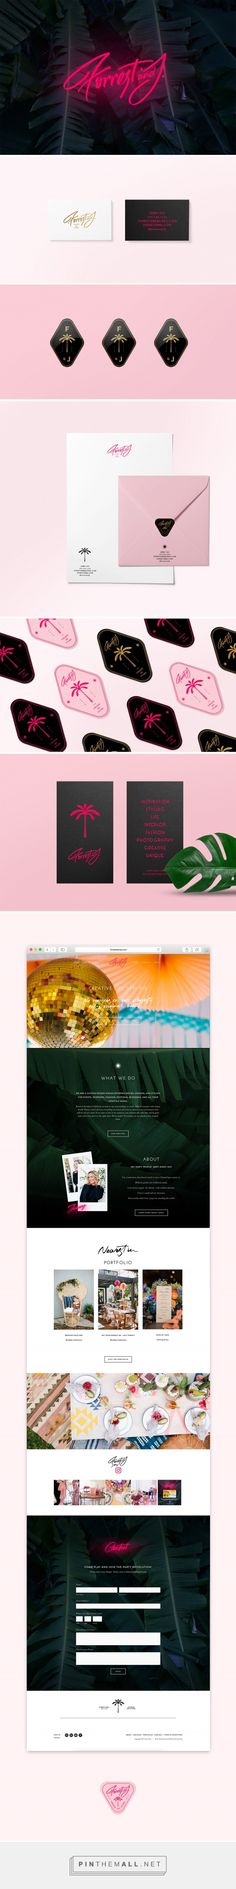 Forrest & J. Design House Brand Identity by Cocorrina | Fivestar Branding Agency – Design and Branding Agency & Curated Inspiration Gallery